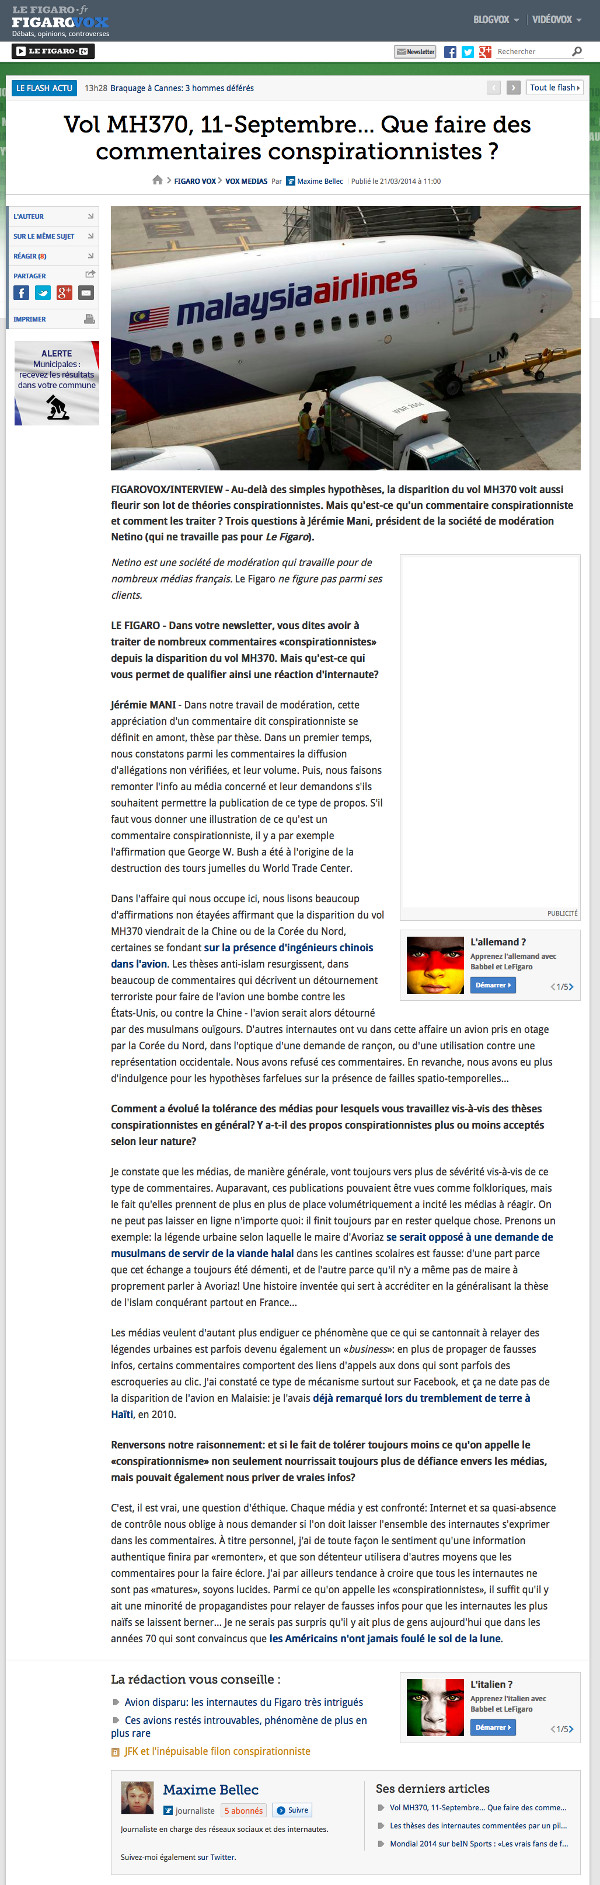 Vol_MH370-commentaires-conspirationnisteslefigaro